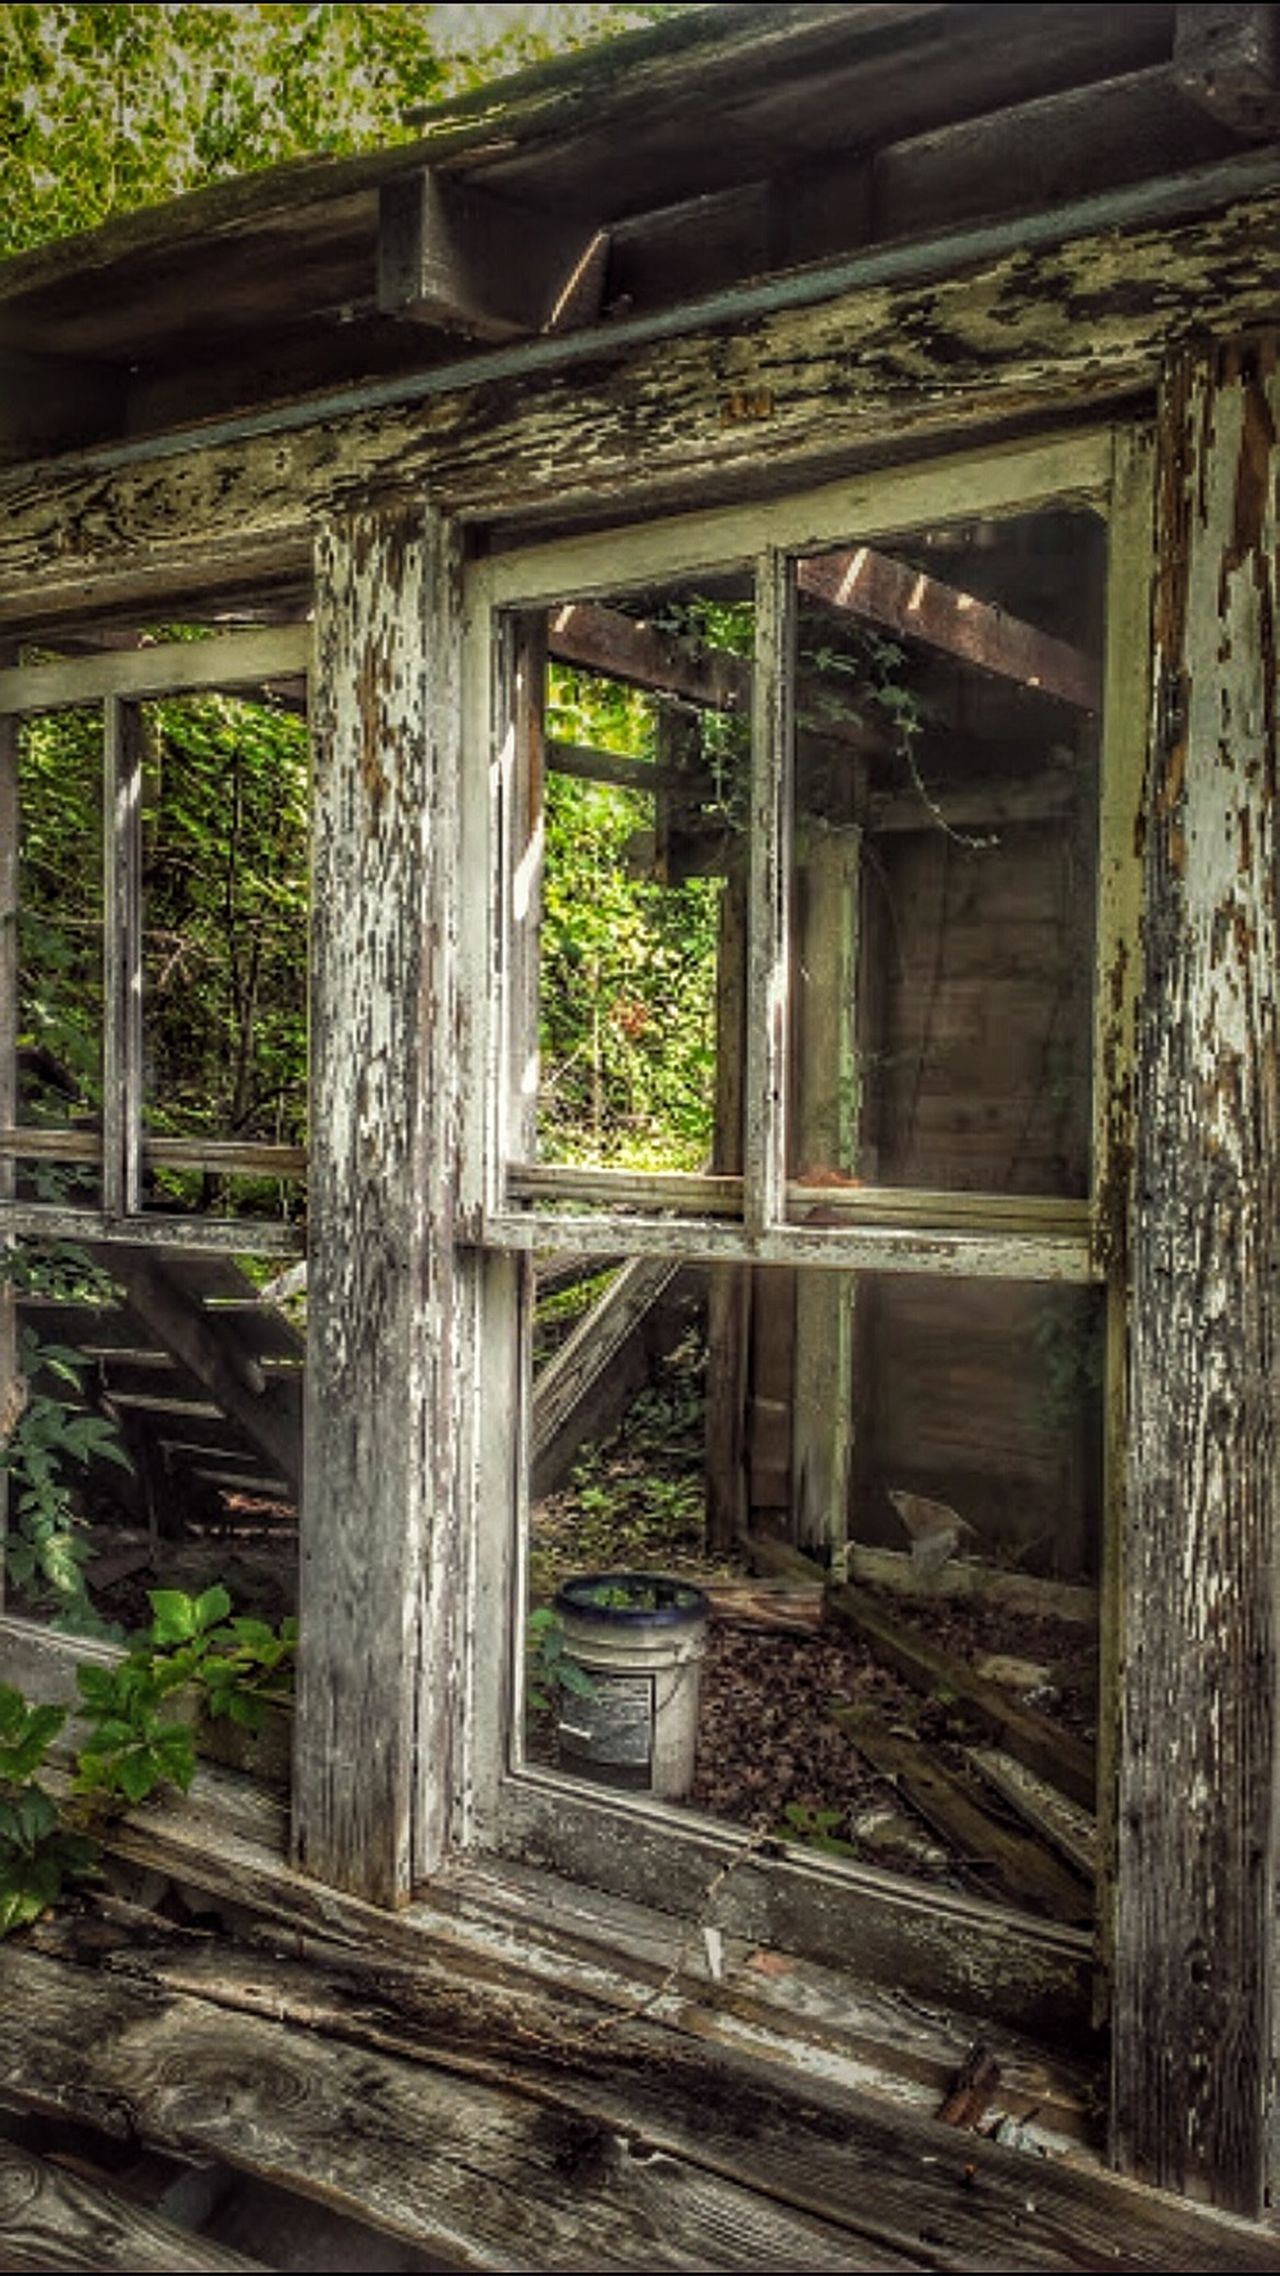 A View To A Kill Broken Window Building Exterior Wood - Material House Built Structure Abandoned Abandoned Places Rural Exploration Tresspassing For Art Rural Decay Rural Scene Rural America Abandoned Buildings AMPt - My Perspective Abandoned & Derelict Window Creepy Atmoshpere Weathered Residential Building